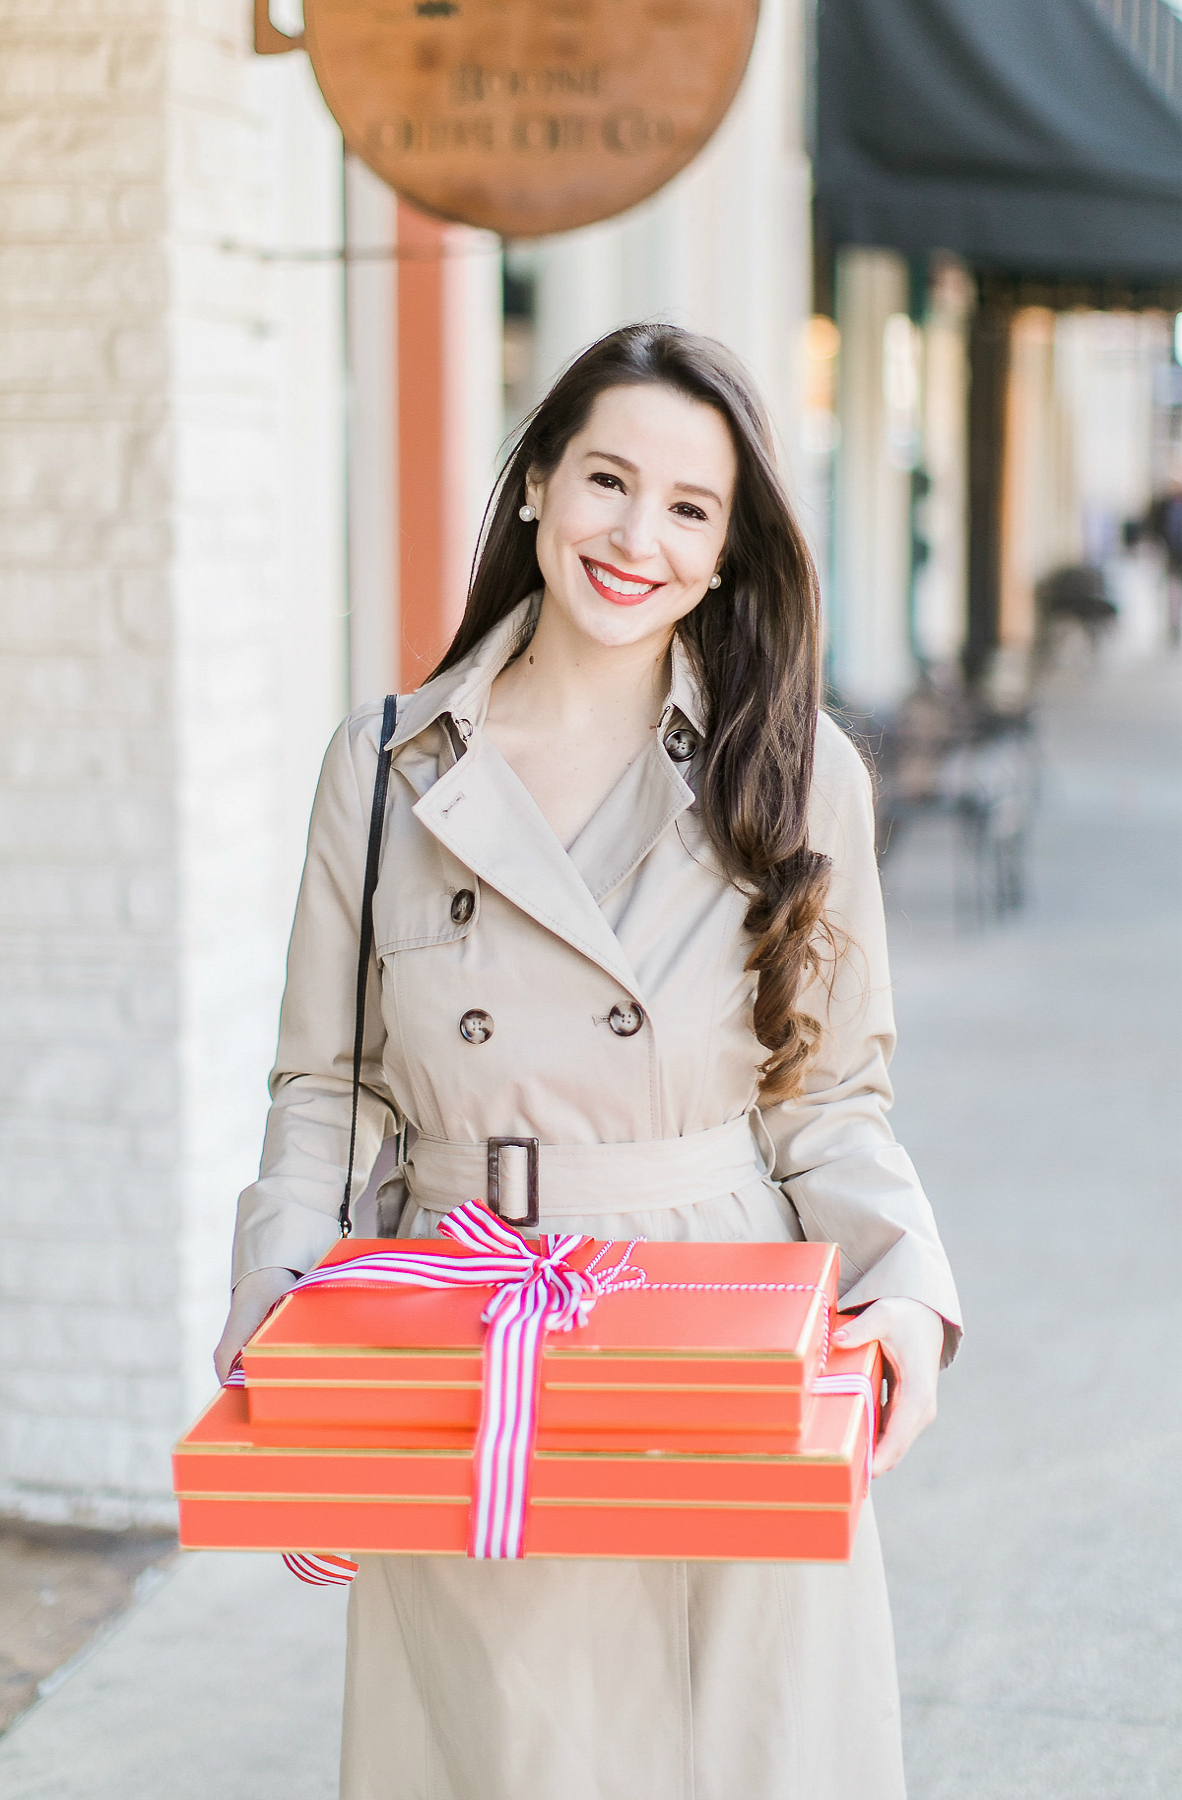 10 Cyber Monday 2018 Deals You Don't Want to Miss by affordable fashion and southern lifestyle blogger Stephanie Ziajka from Diary of a Debutante